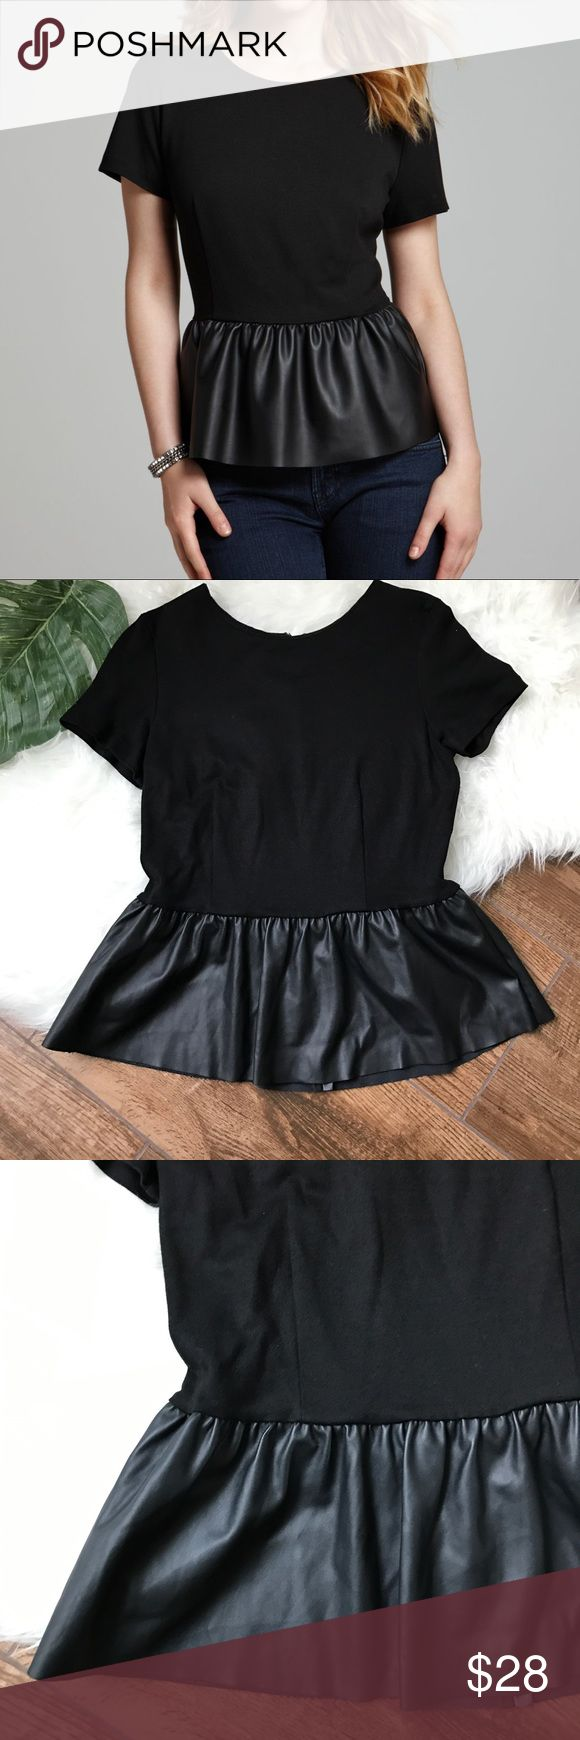 "French Connection • Black Faux Leather Peplum Top French Connection black peplum top with faux leather Contrast. Hidden back zipper. Perfect for the office, a night out or the holidays! Excellent condition- looks unworn.   ▪️Length 23.5"" ▪️Pit to pit 16""  No Trades!! 1121vt French Connection Tops"